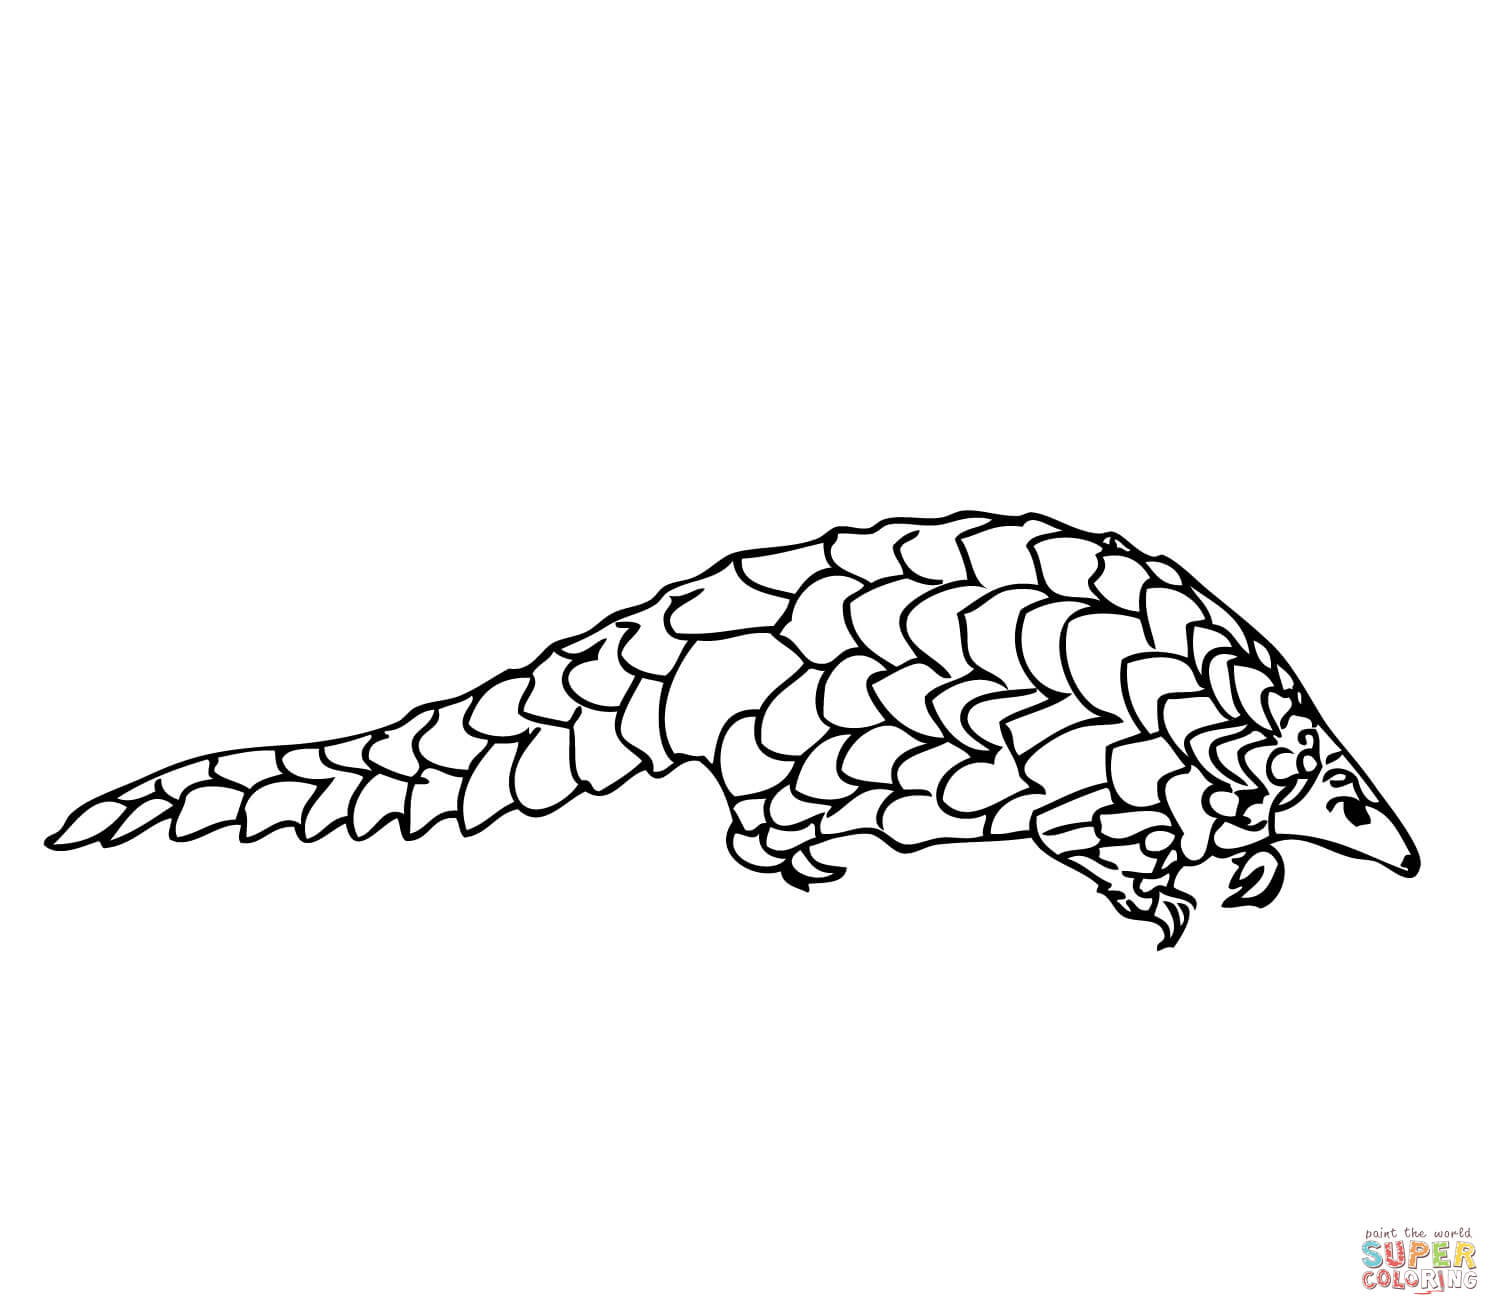 Pangolin coloring #11, Download drawings